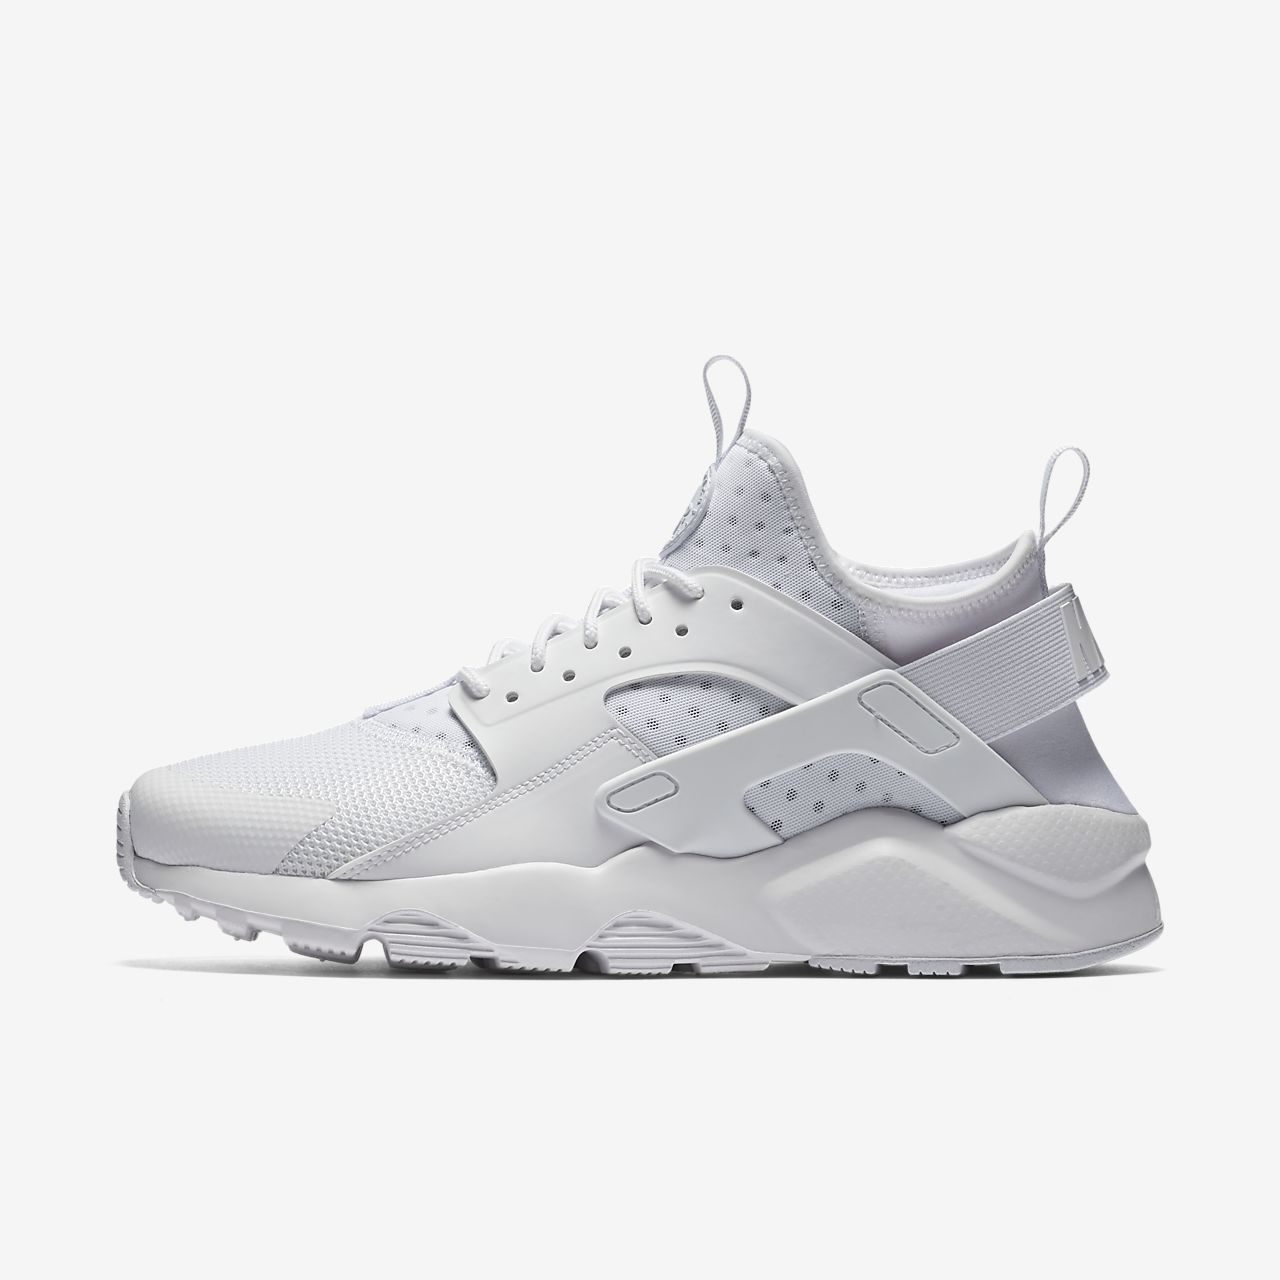 hot sale online 277f3 37aac ... Nike Air Huarache Ultra Men s Shoe